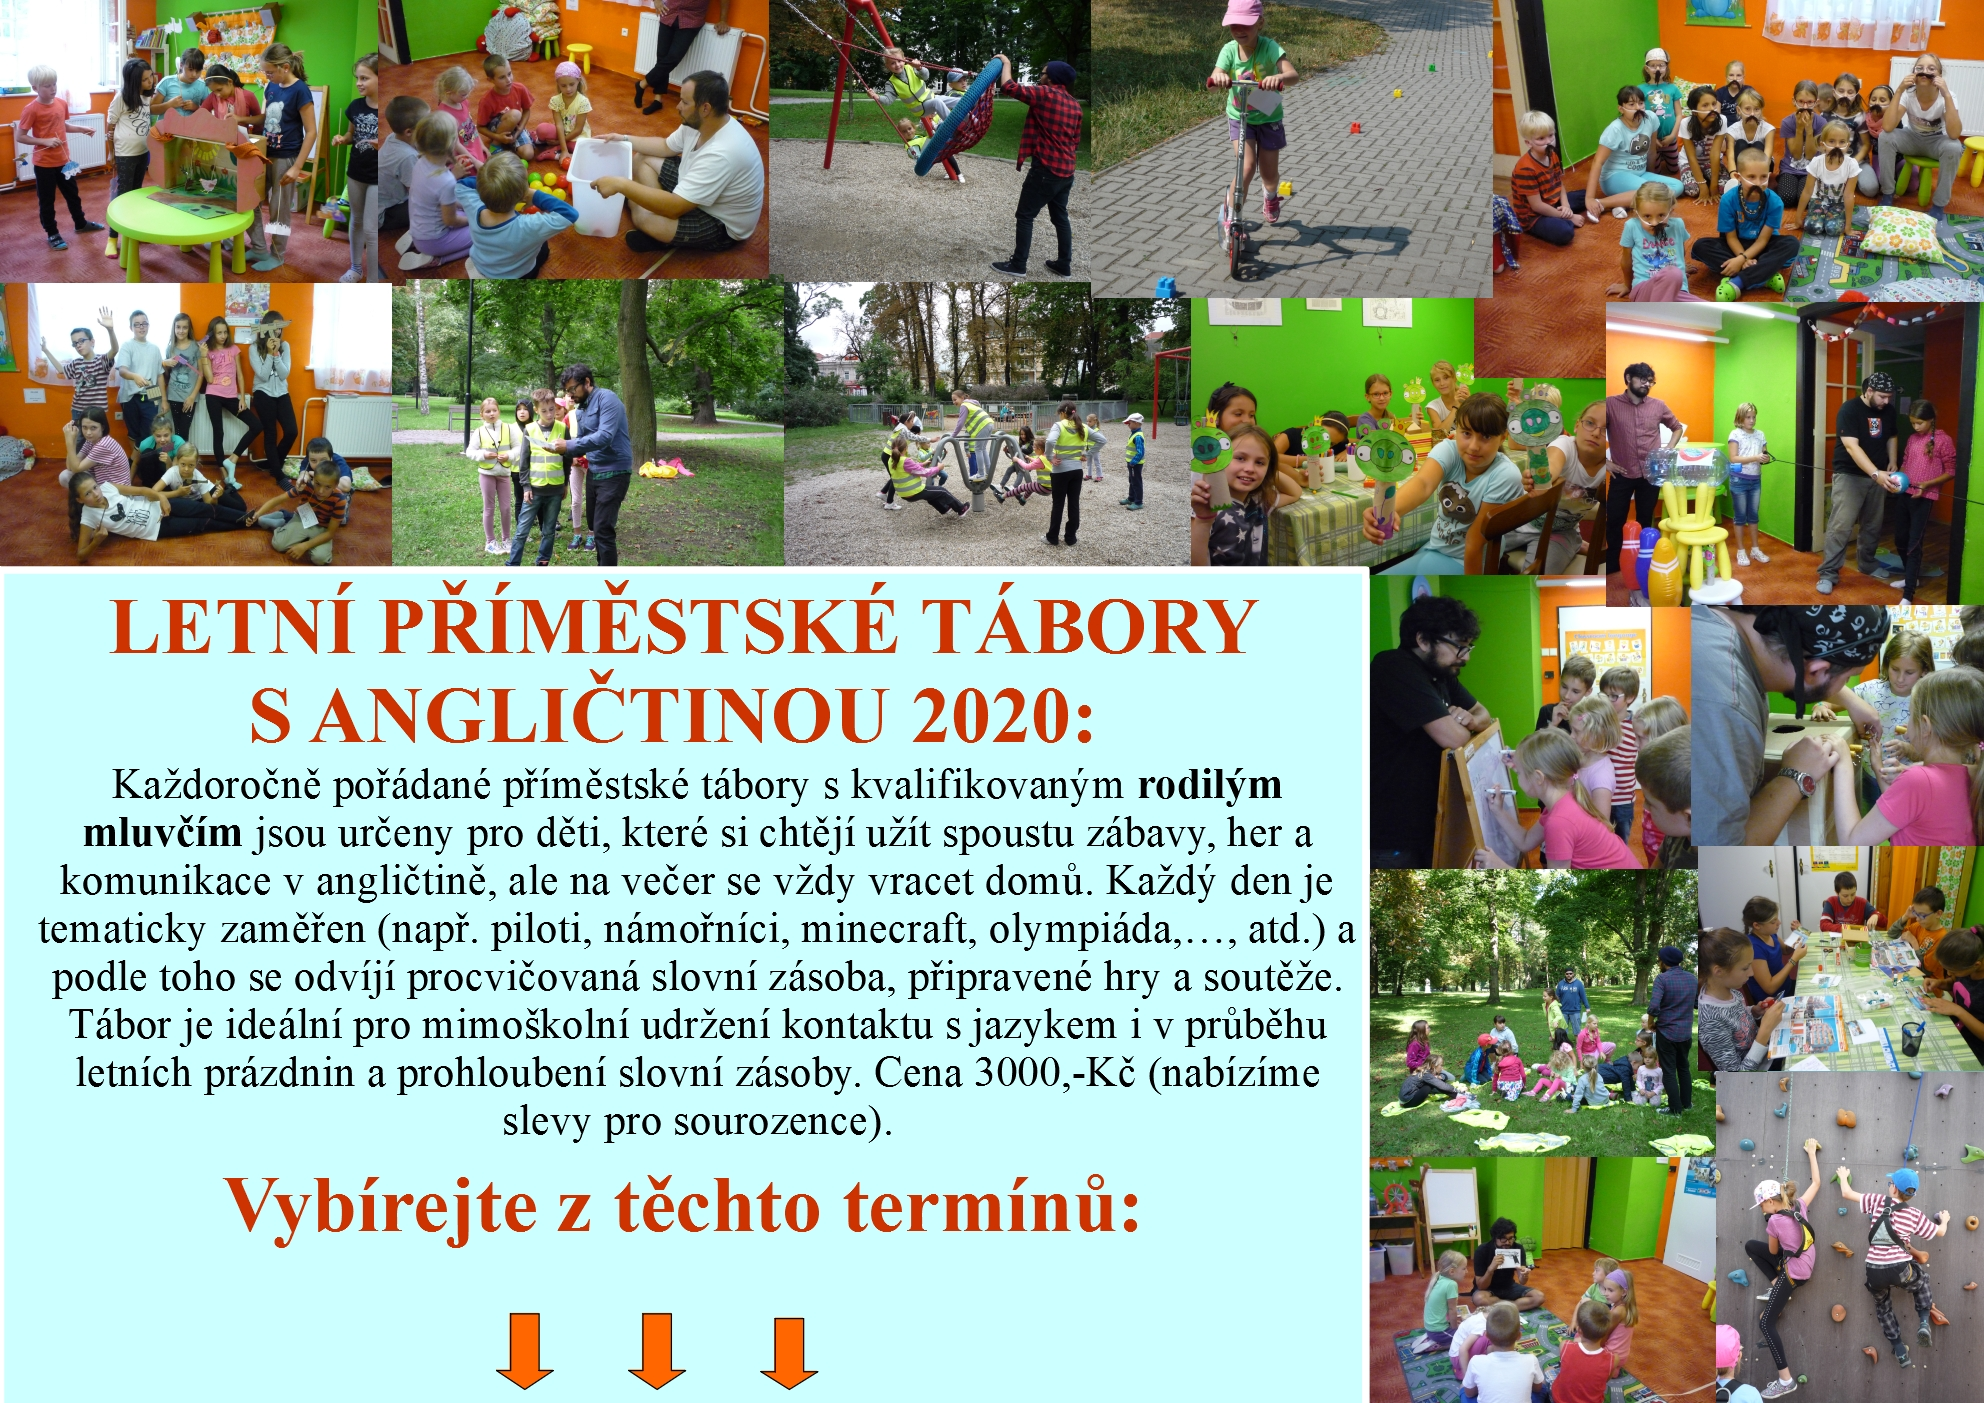 tábory web picture 2020